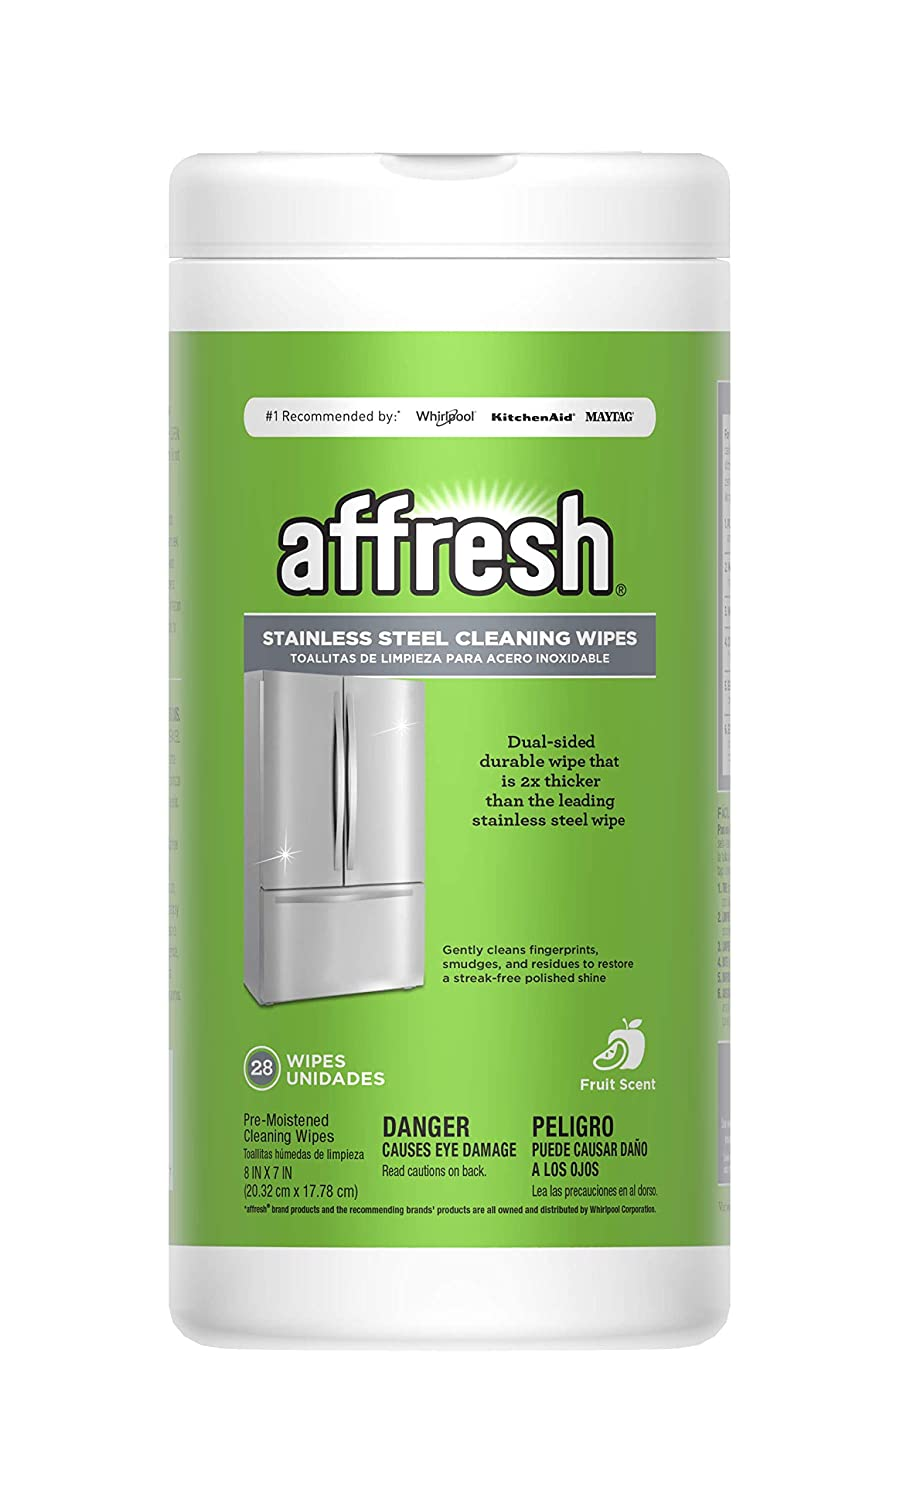 Amazon.com: Affresh W10539769 Stainless Steel Wipes, 28Ct: Home Improvement